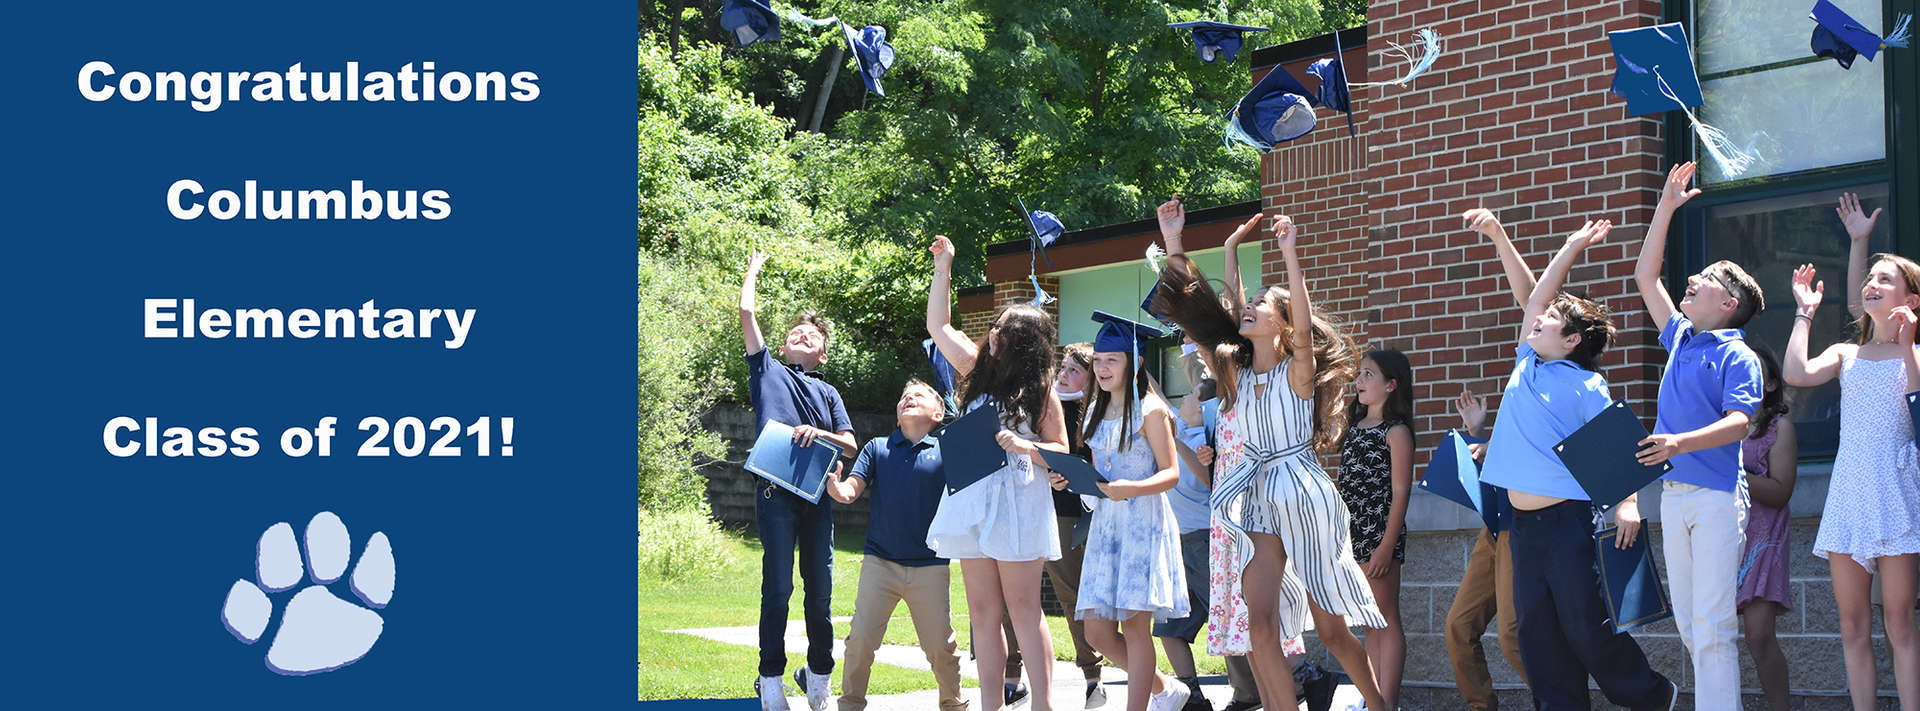 Group of kids throw graduation caps in the air